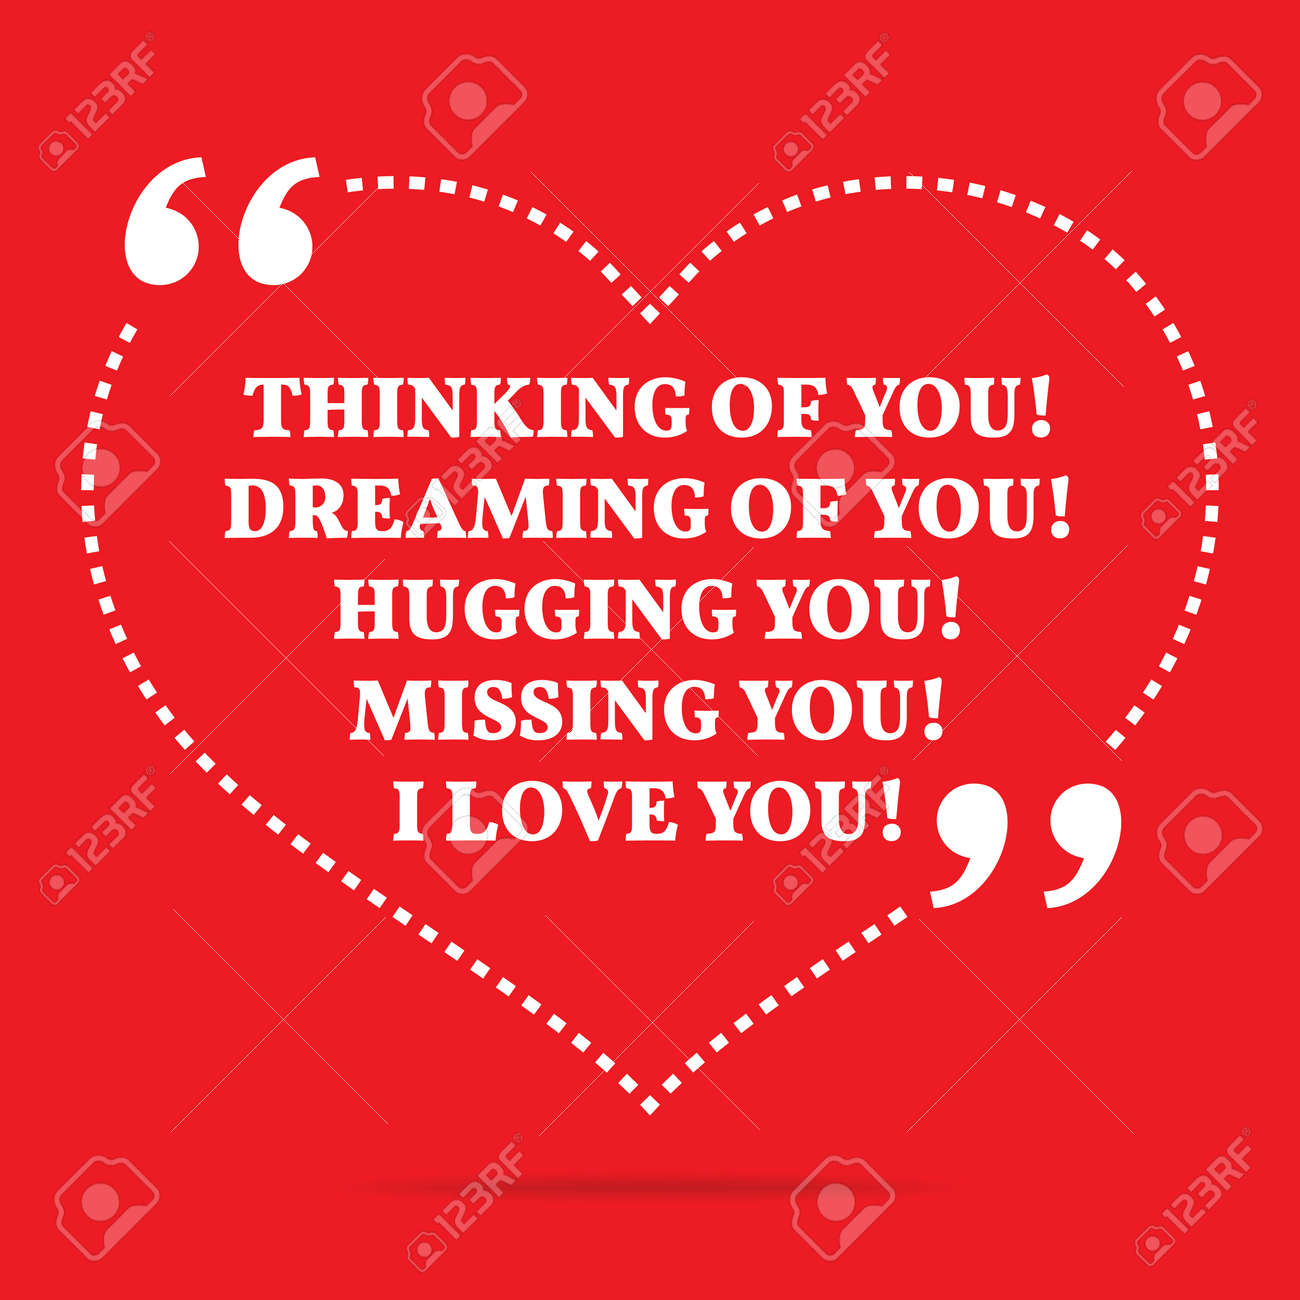 Inspirational Love Quote Thinking Of You Dreaming Of You Hugging